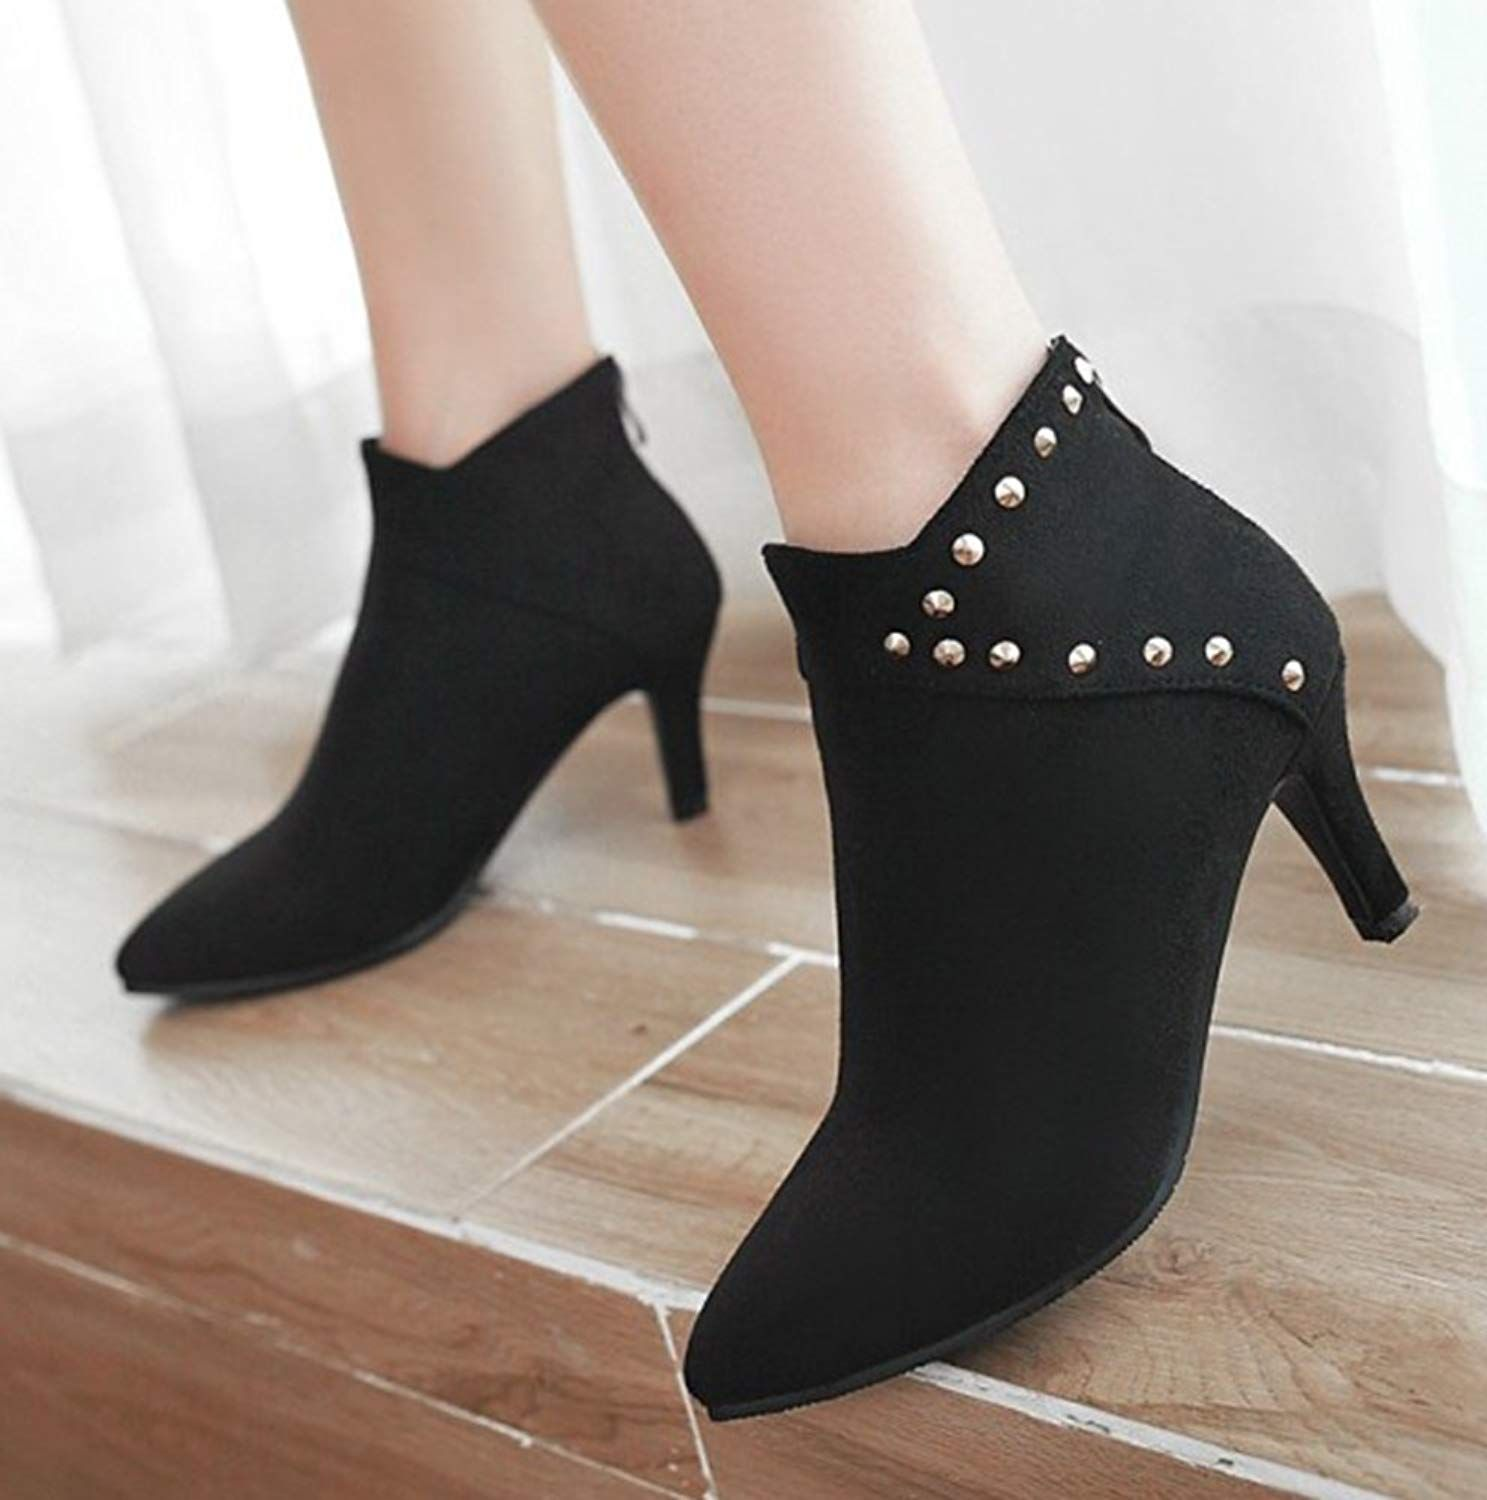 a53112281e Aisun Women's Studded Faux Suede Dressy Zip Up Pointed Toe Ankle ...